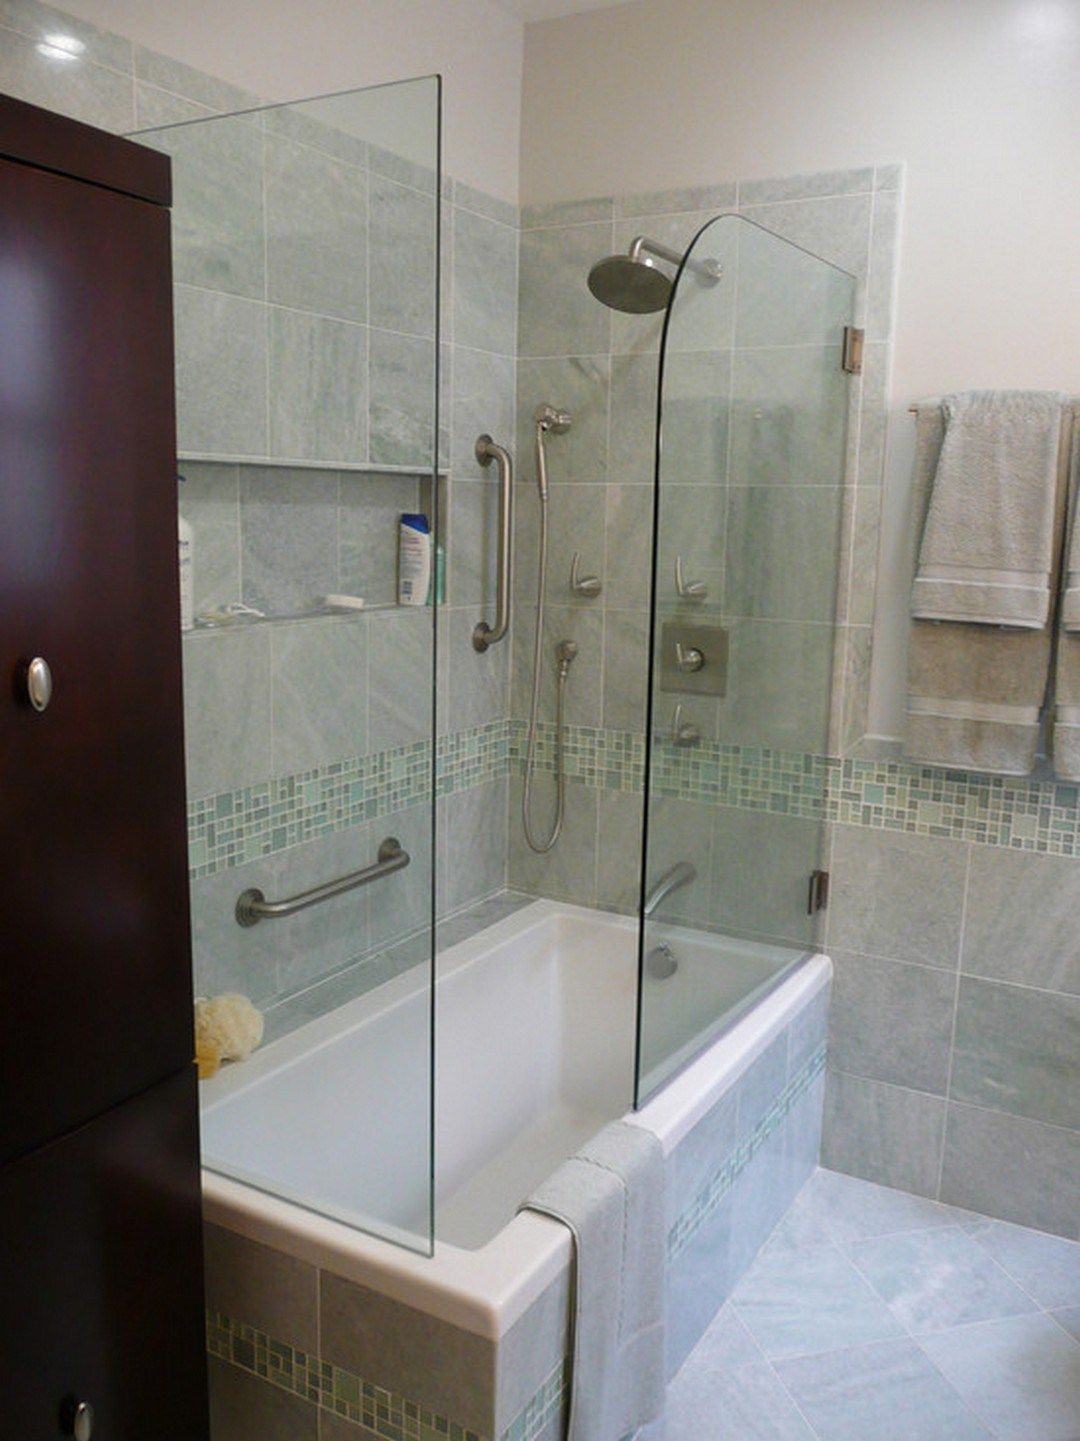 99 Small Bathroom Tub Shower Combo Remodeling Ideas 39 Bathroom Tub Shower Combo Bathtub Shower Combo Bathroom Tub Shower